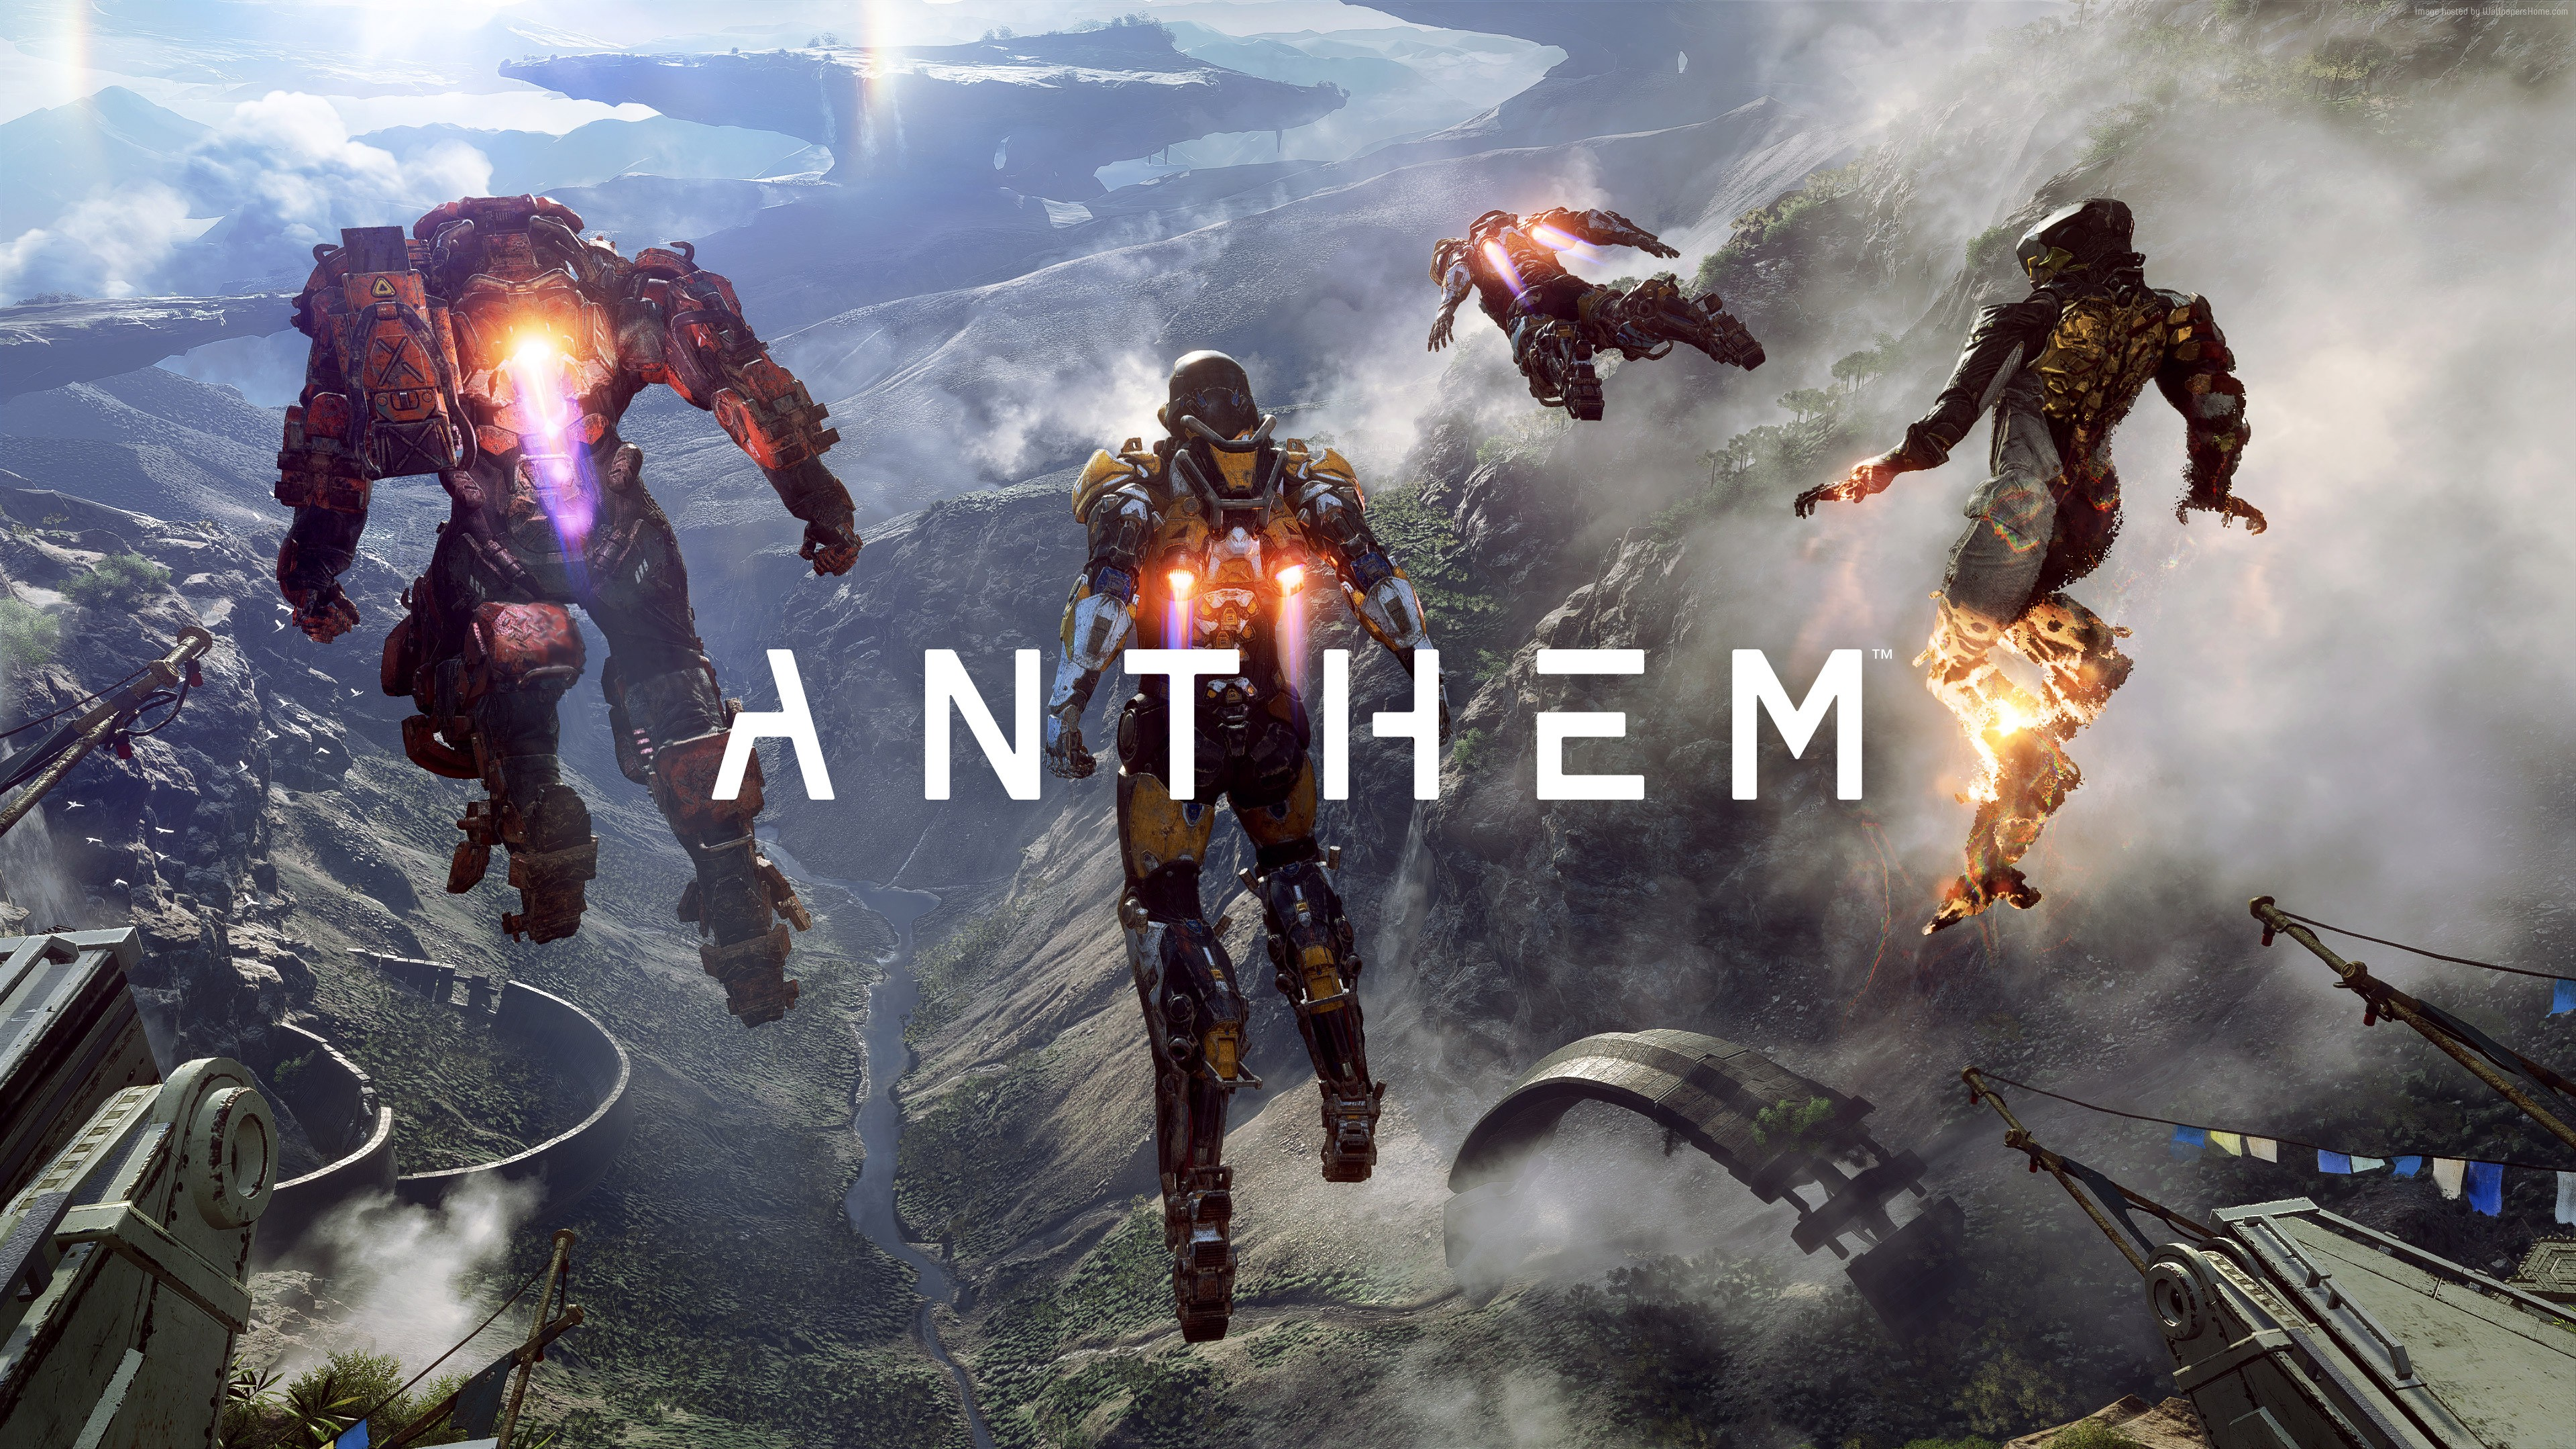 Download Anthem for PC [Windows Devices]